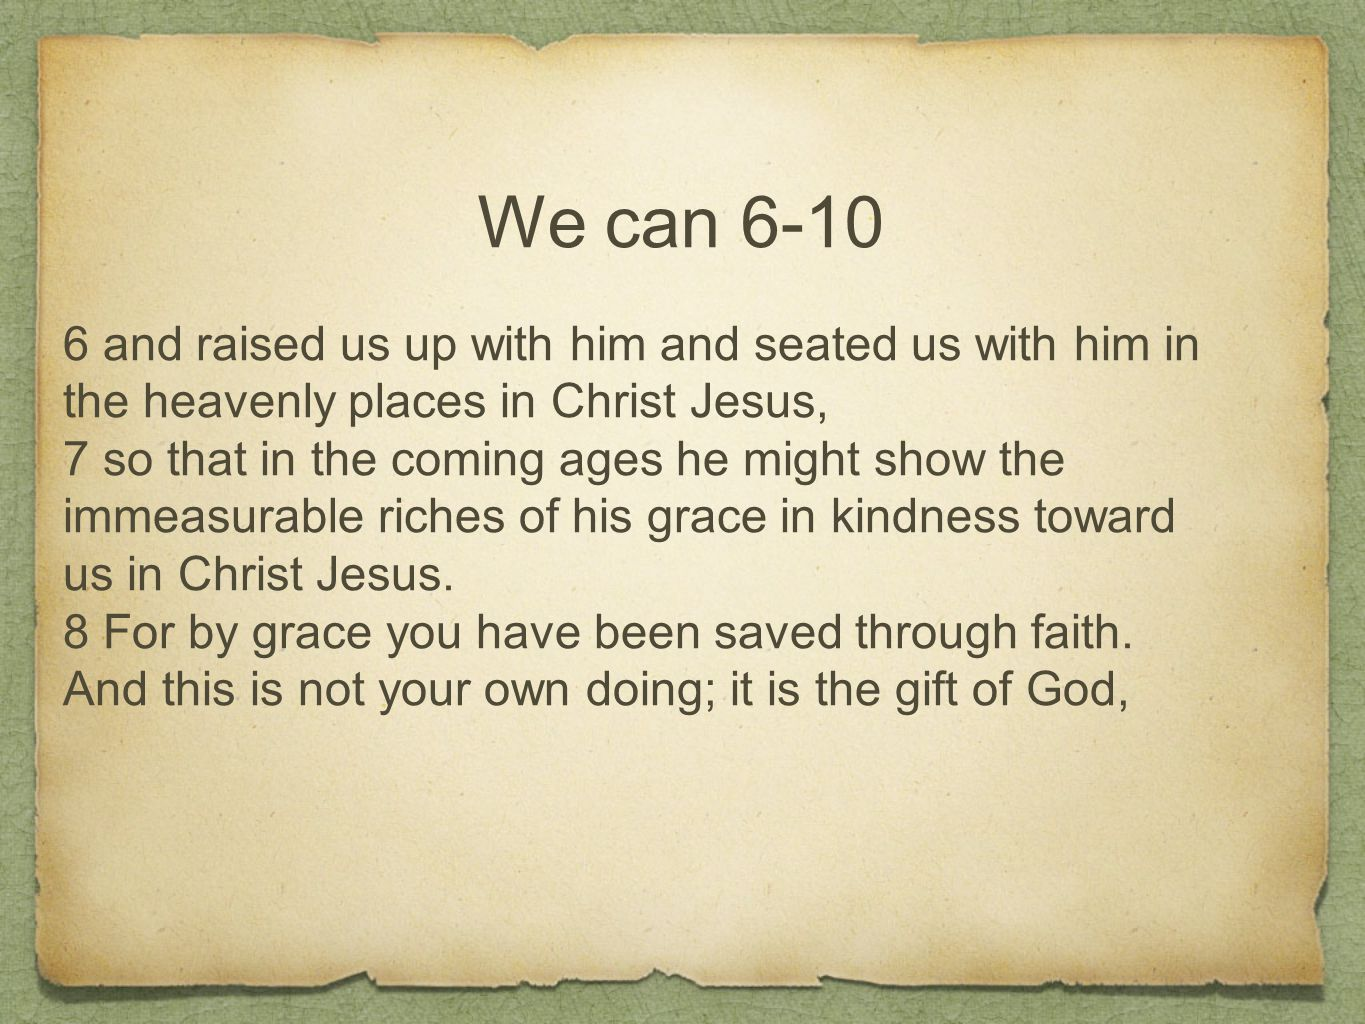 We can 6-10 6 and raised us up with him and seated us with him in the heavenly places in Christ Jesus, 7 so that in the coming ages he might show the immeasurable riches of his grace in kindness toward us in Christ Jesus.